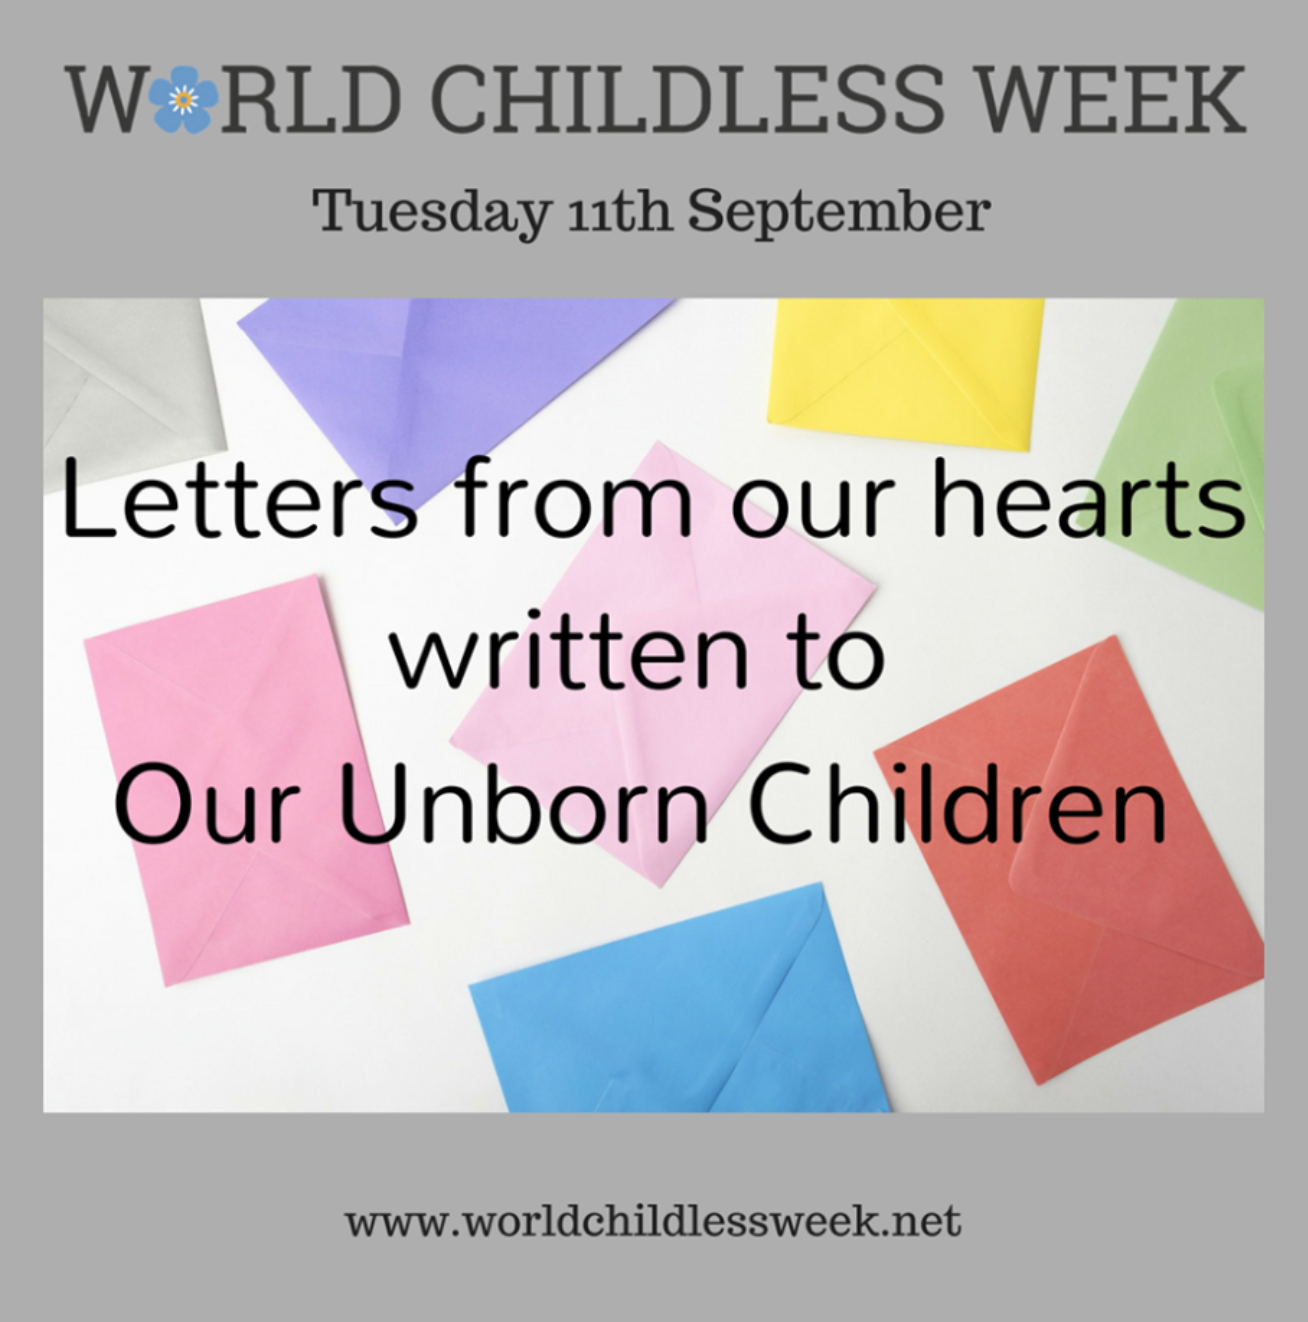 These strange childfree - whether the world threatens childlessness